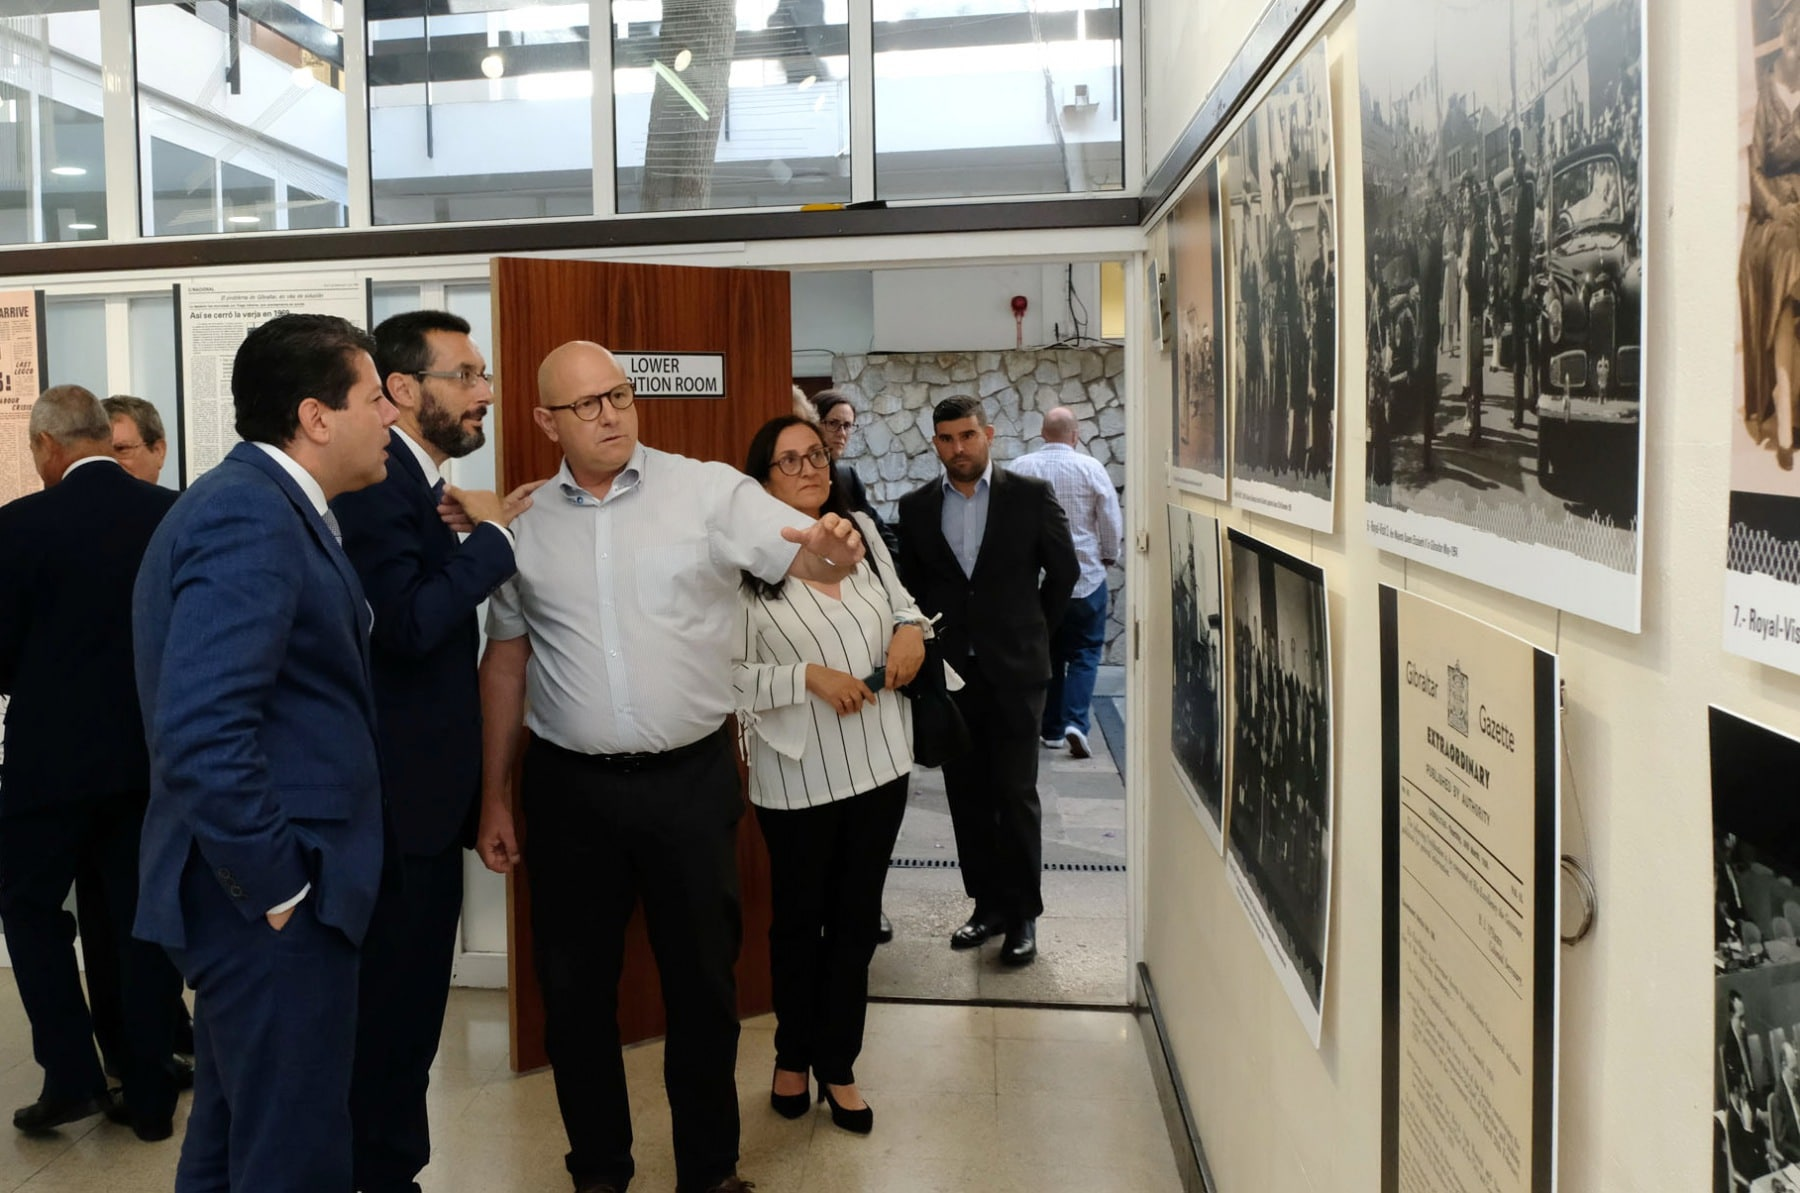 CM & Franco Visit Frontier Exhibition 060619 { seq} ( Photo John Bugeja) at the JMHall